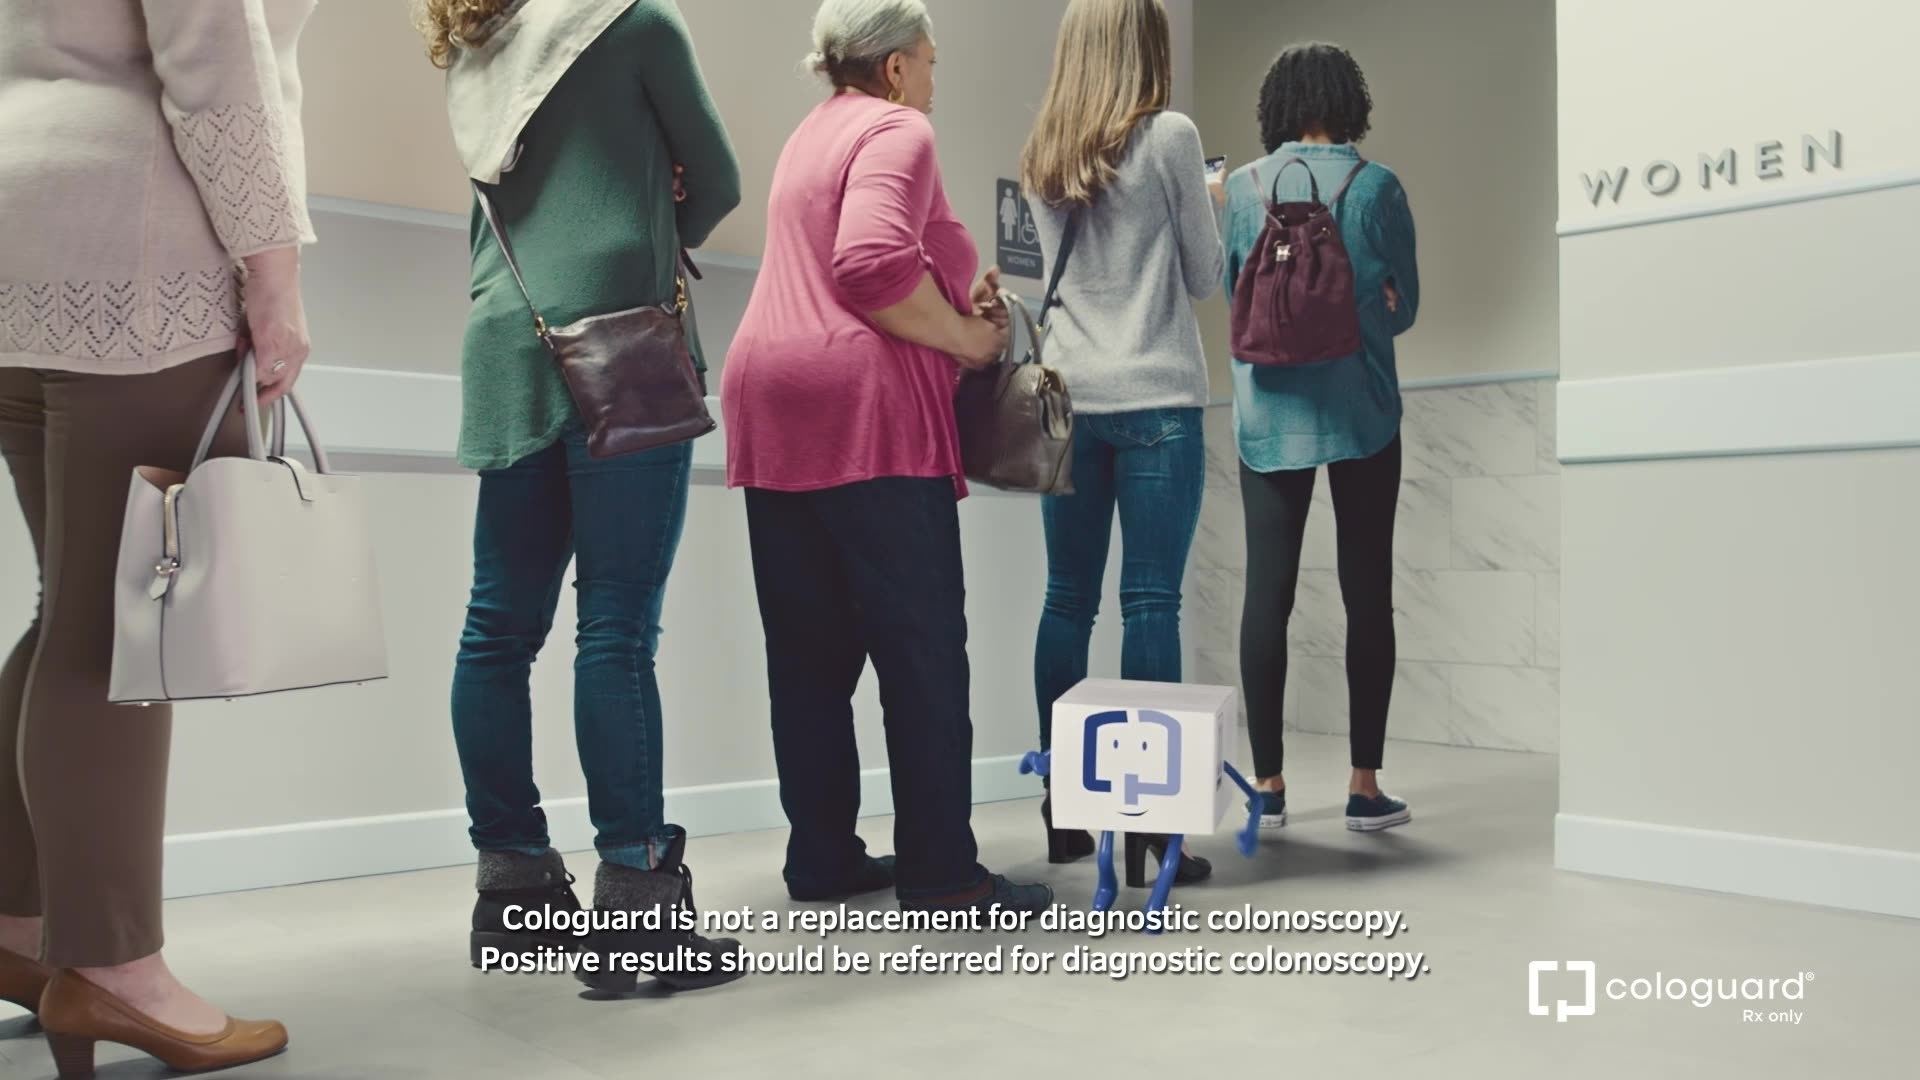 New Cologuard ad tries humor to make colon screening accessible